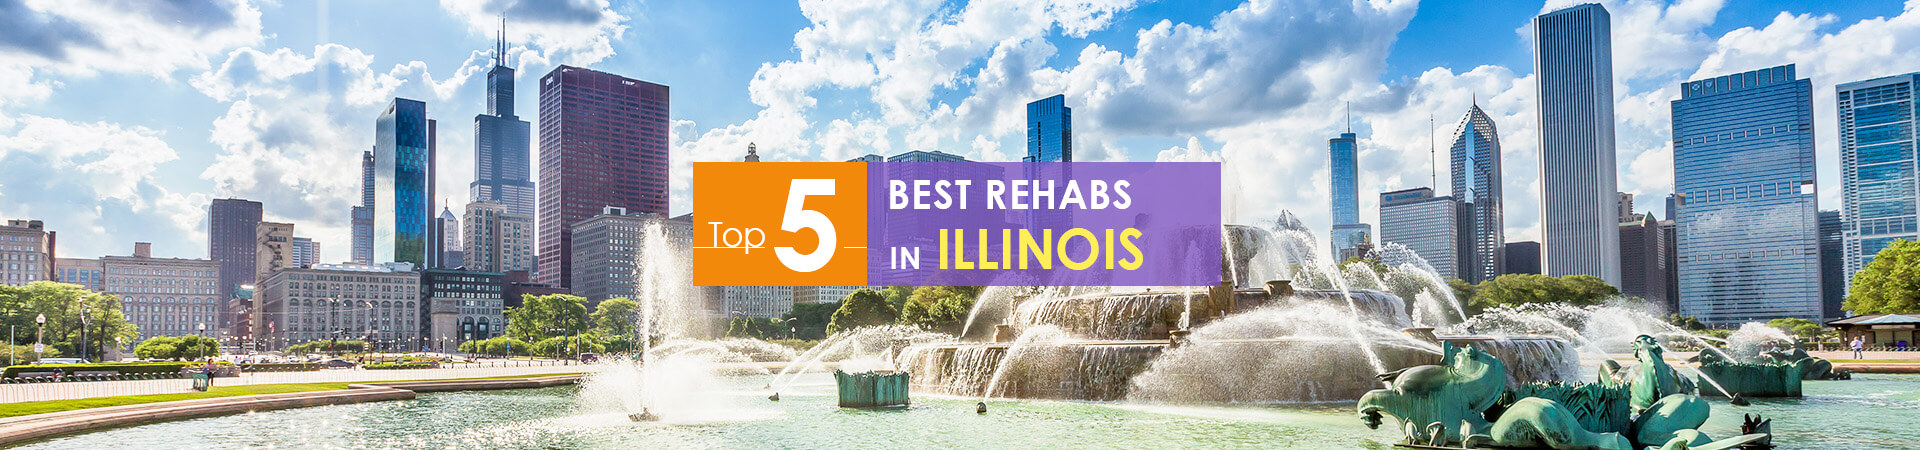 Illinois Rehabs: Best Drug and Alcohol Treatment Centers in IL